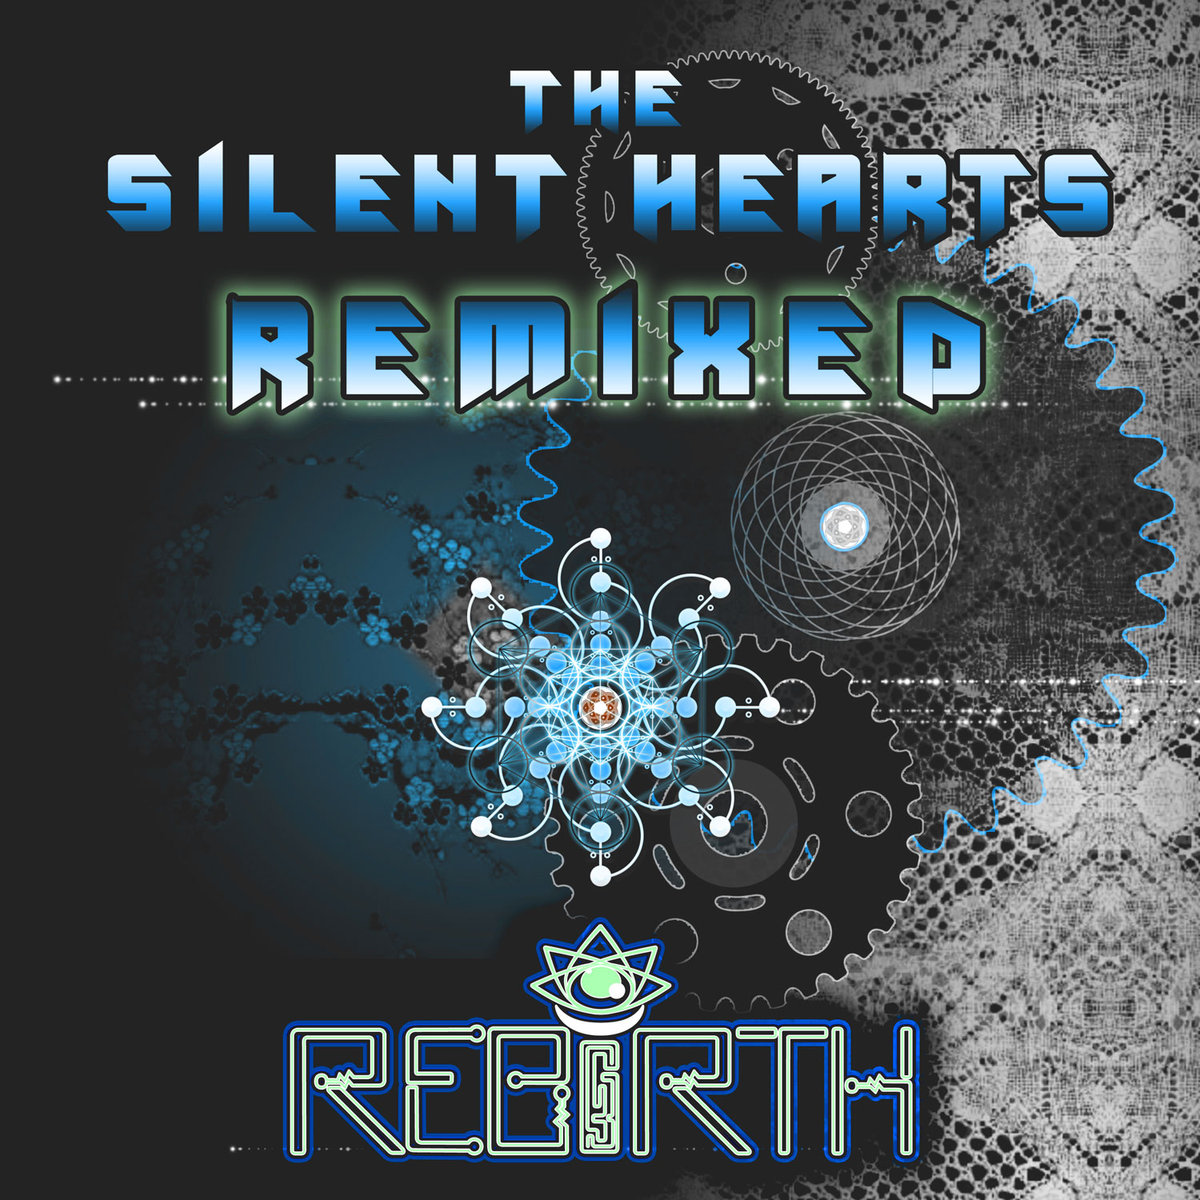 Rebirth - The Silent Hearts: Remixed @ 'The Silent Hearts: Remixed' album (bass, electronic)